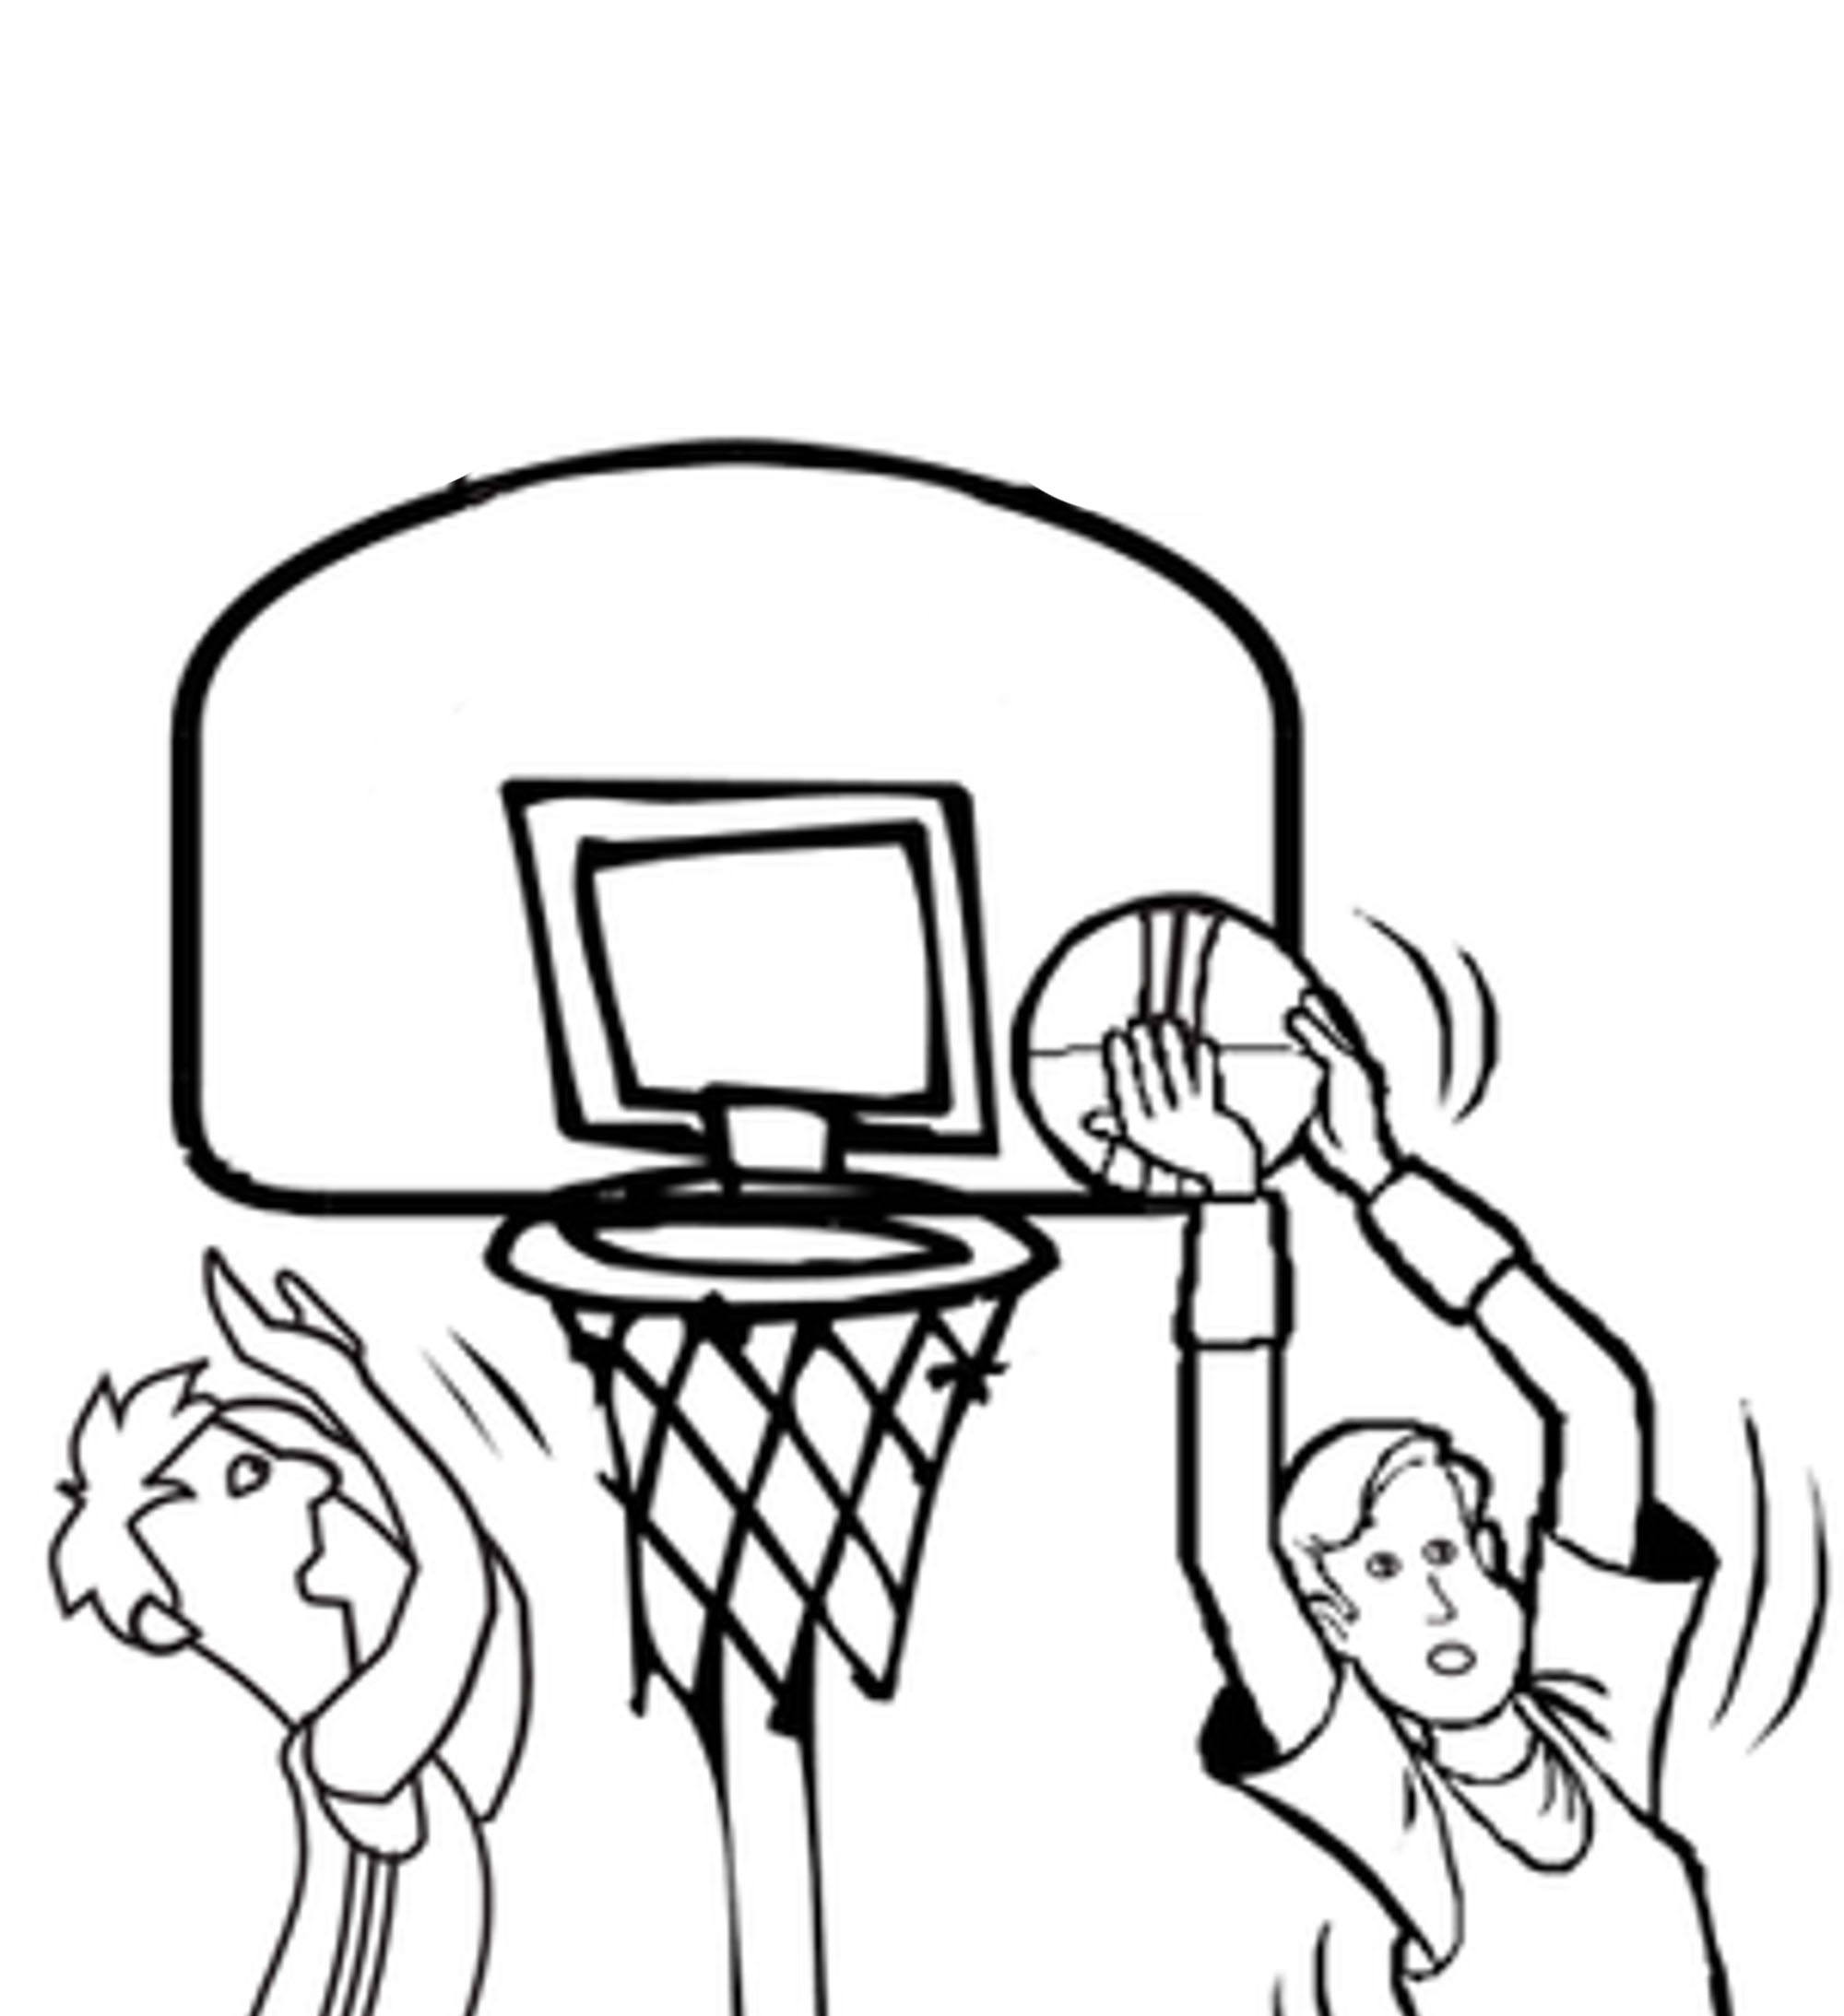 Coloring Pages Basketball Bestappsforkids